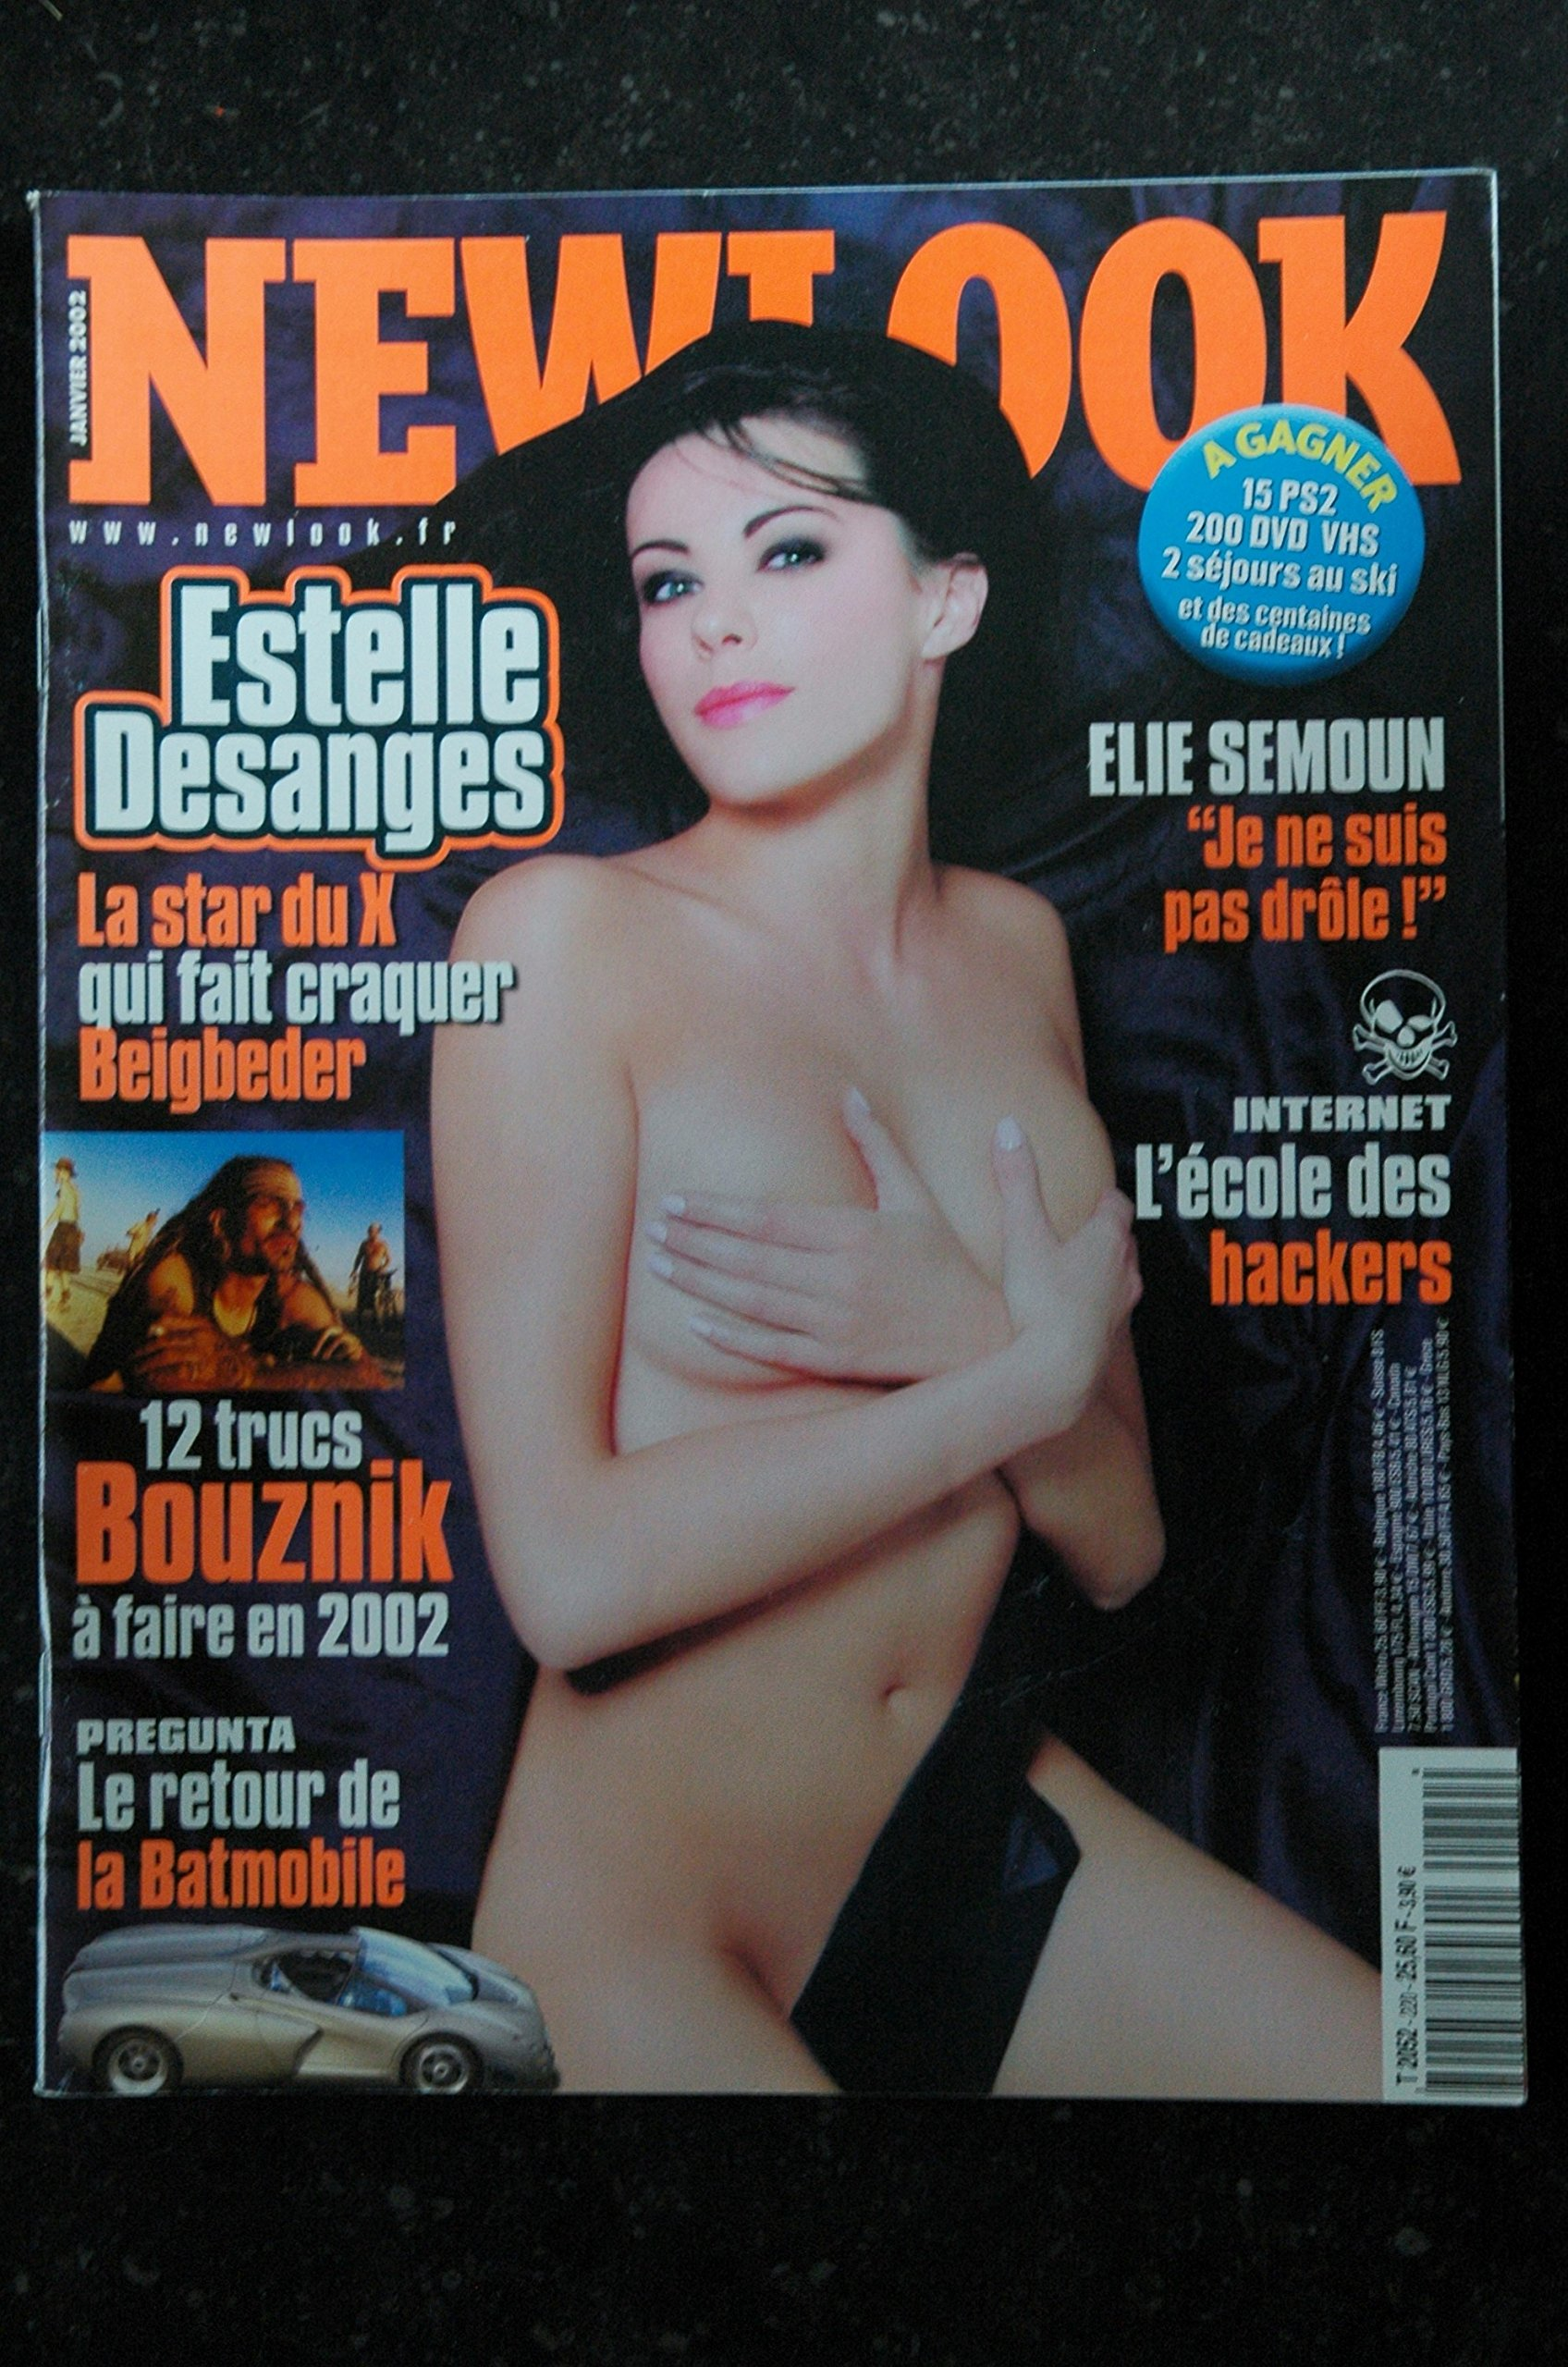 Estelle Desanges nude (81 photos) Video, Snapchat, see through